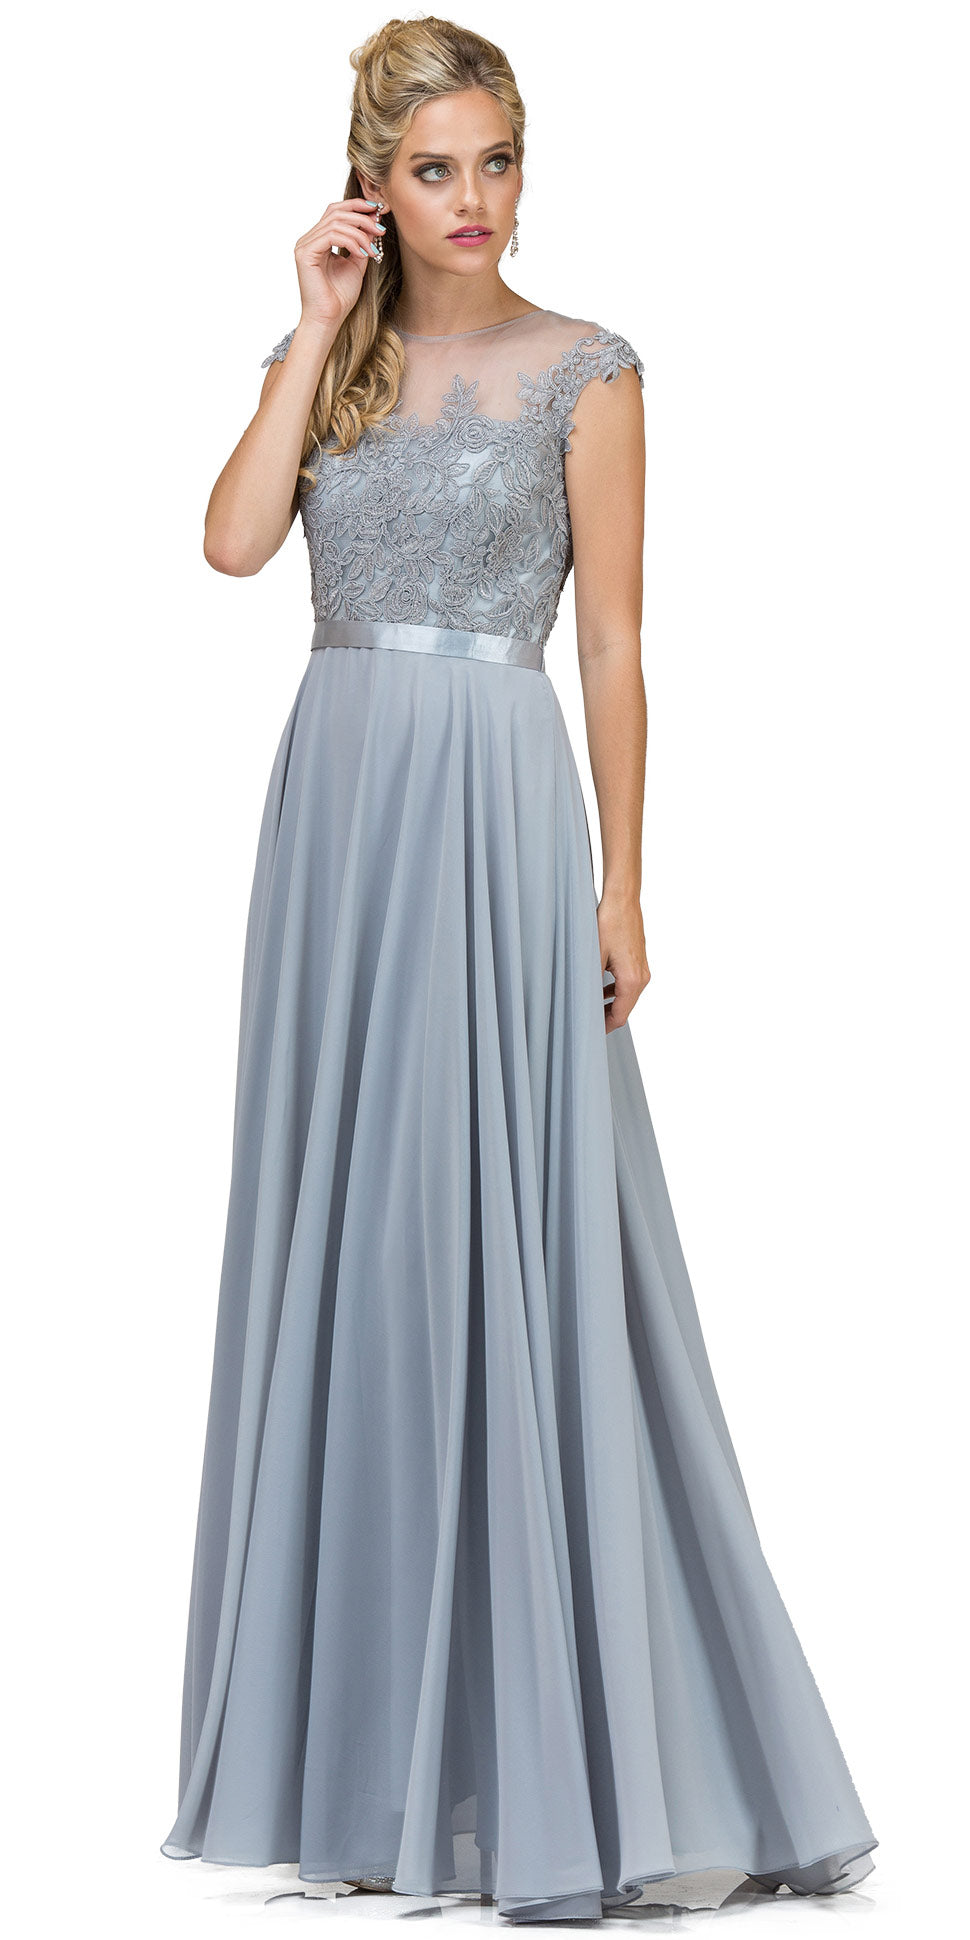 Image of Embroidered Mesh Bodice Long Chiffon Prom Formal Dress in Silver